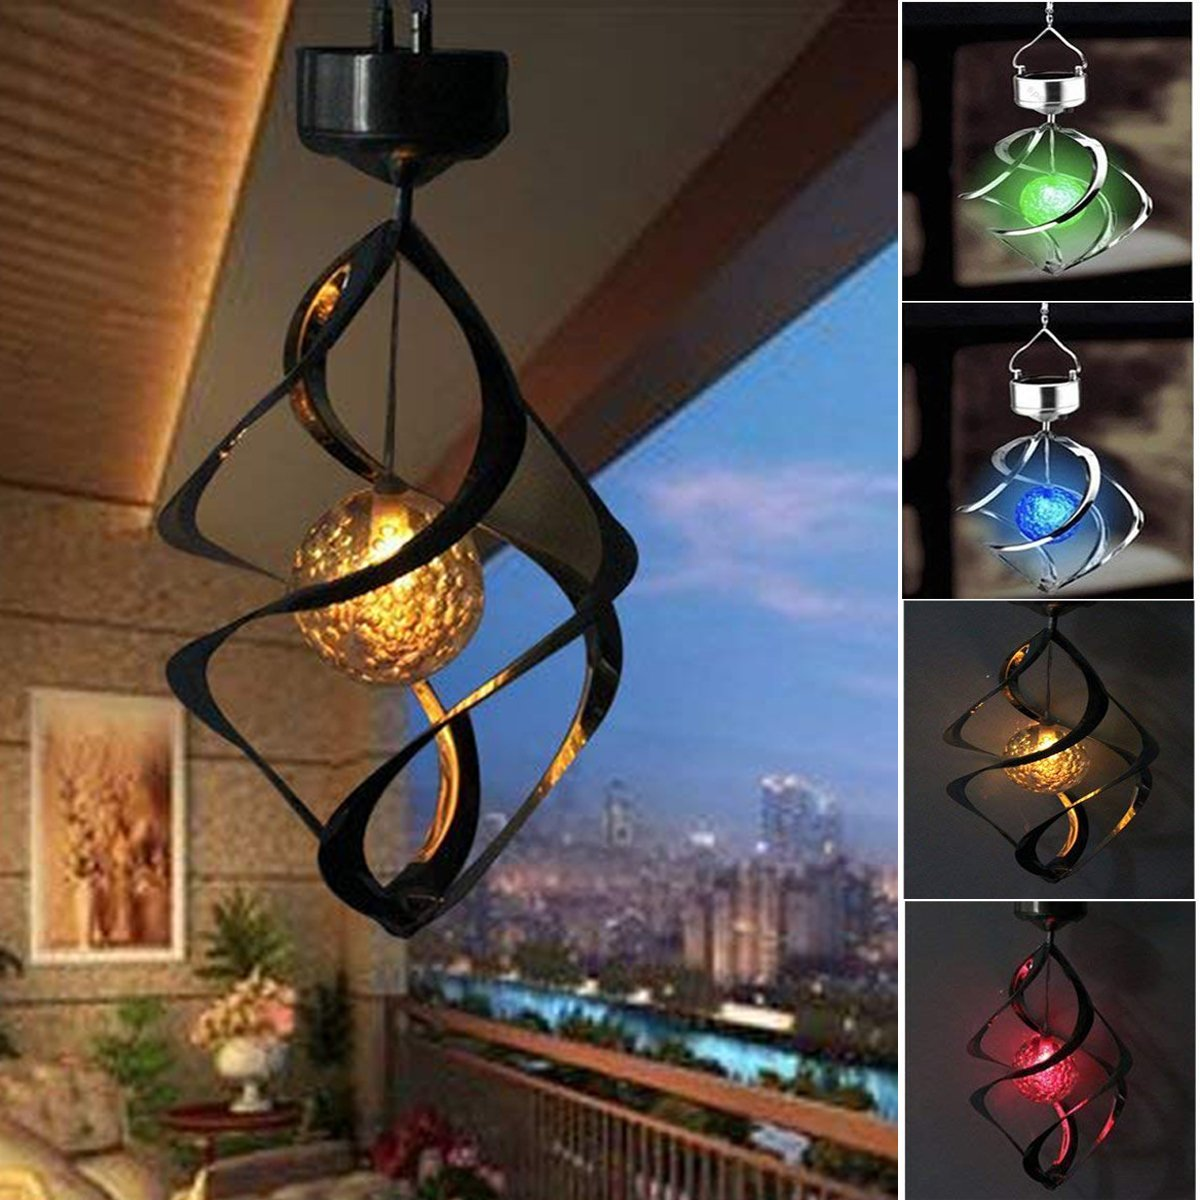 YAZJIWAN Solar Wind Chimes LED Colour Changing Hanging Wind Light Waterproof Spiral Spinner Lamp for Garden Yard Lawn Balcony Porch